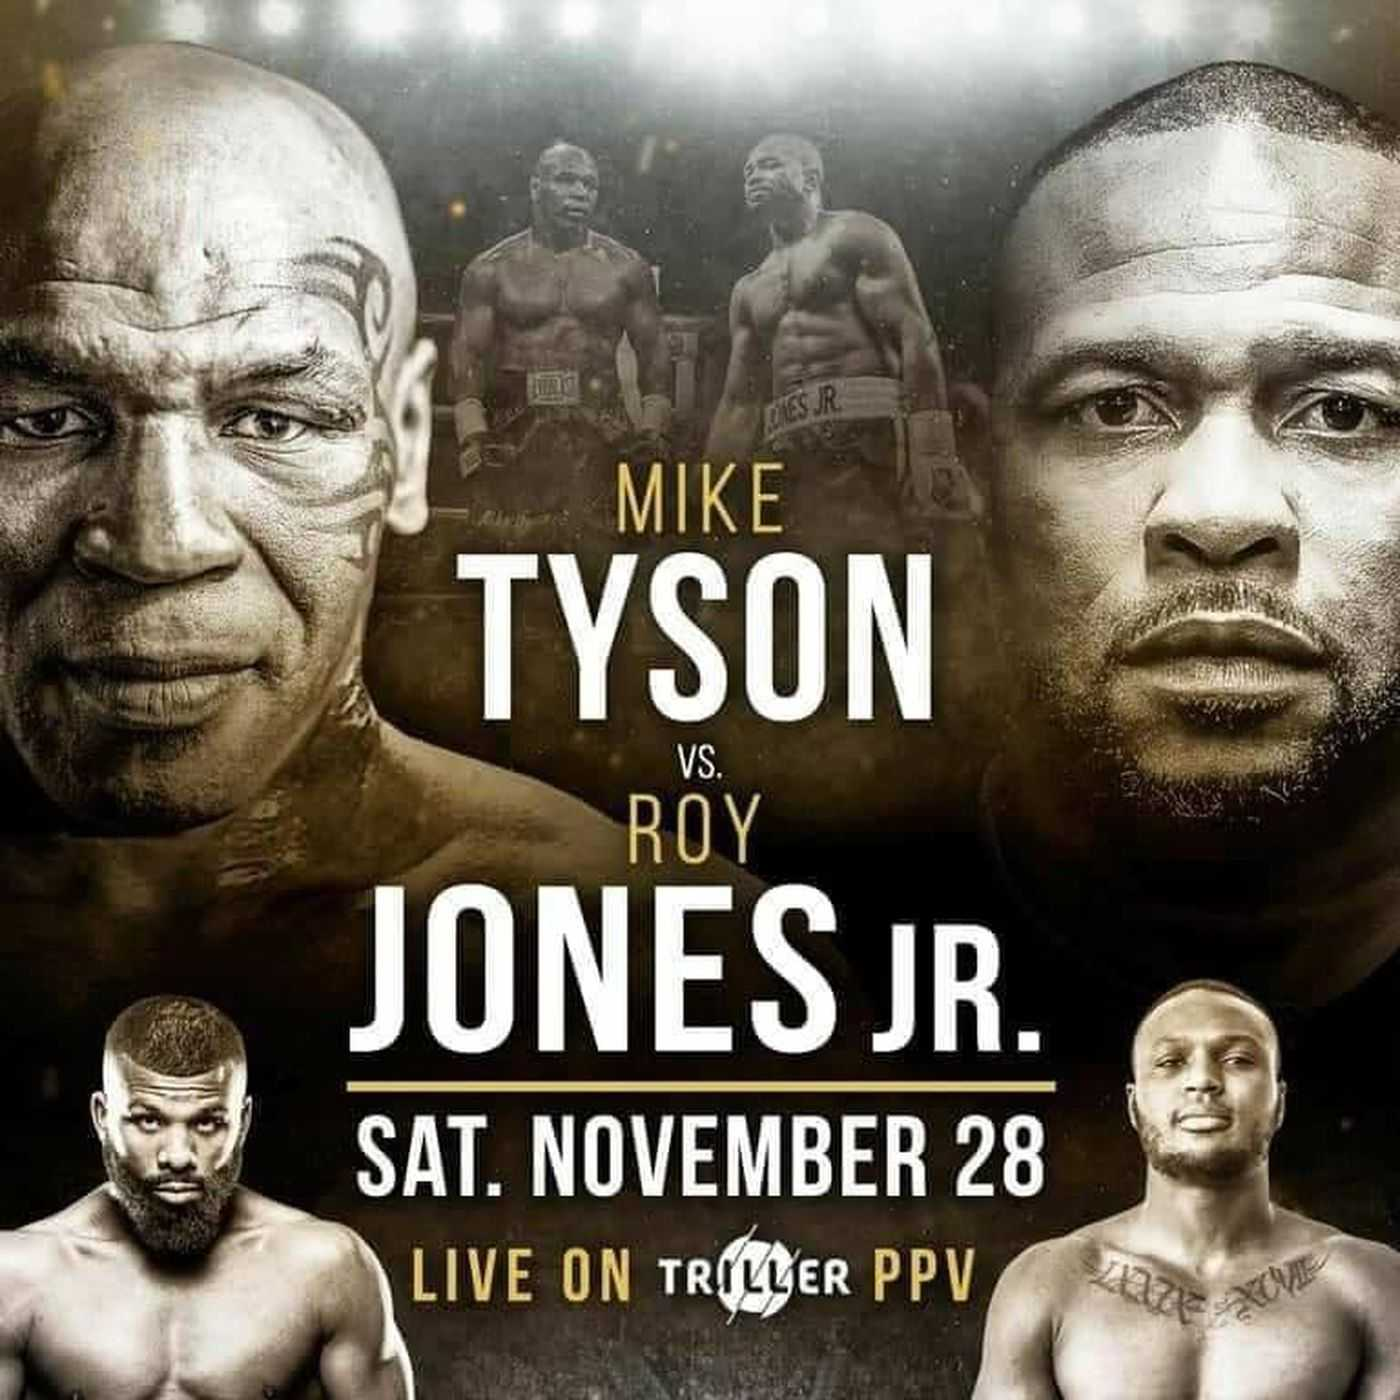 Mike Tyson and Roy Jones Jr. Turn Back the Clock